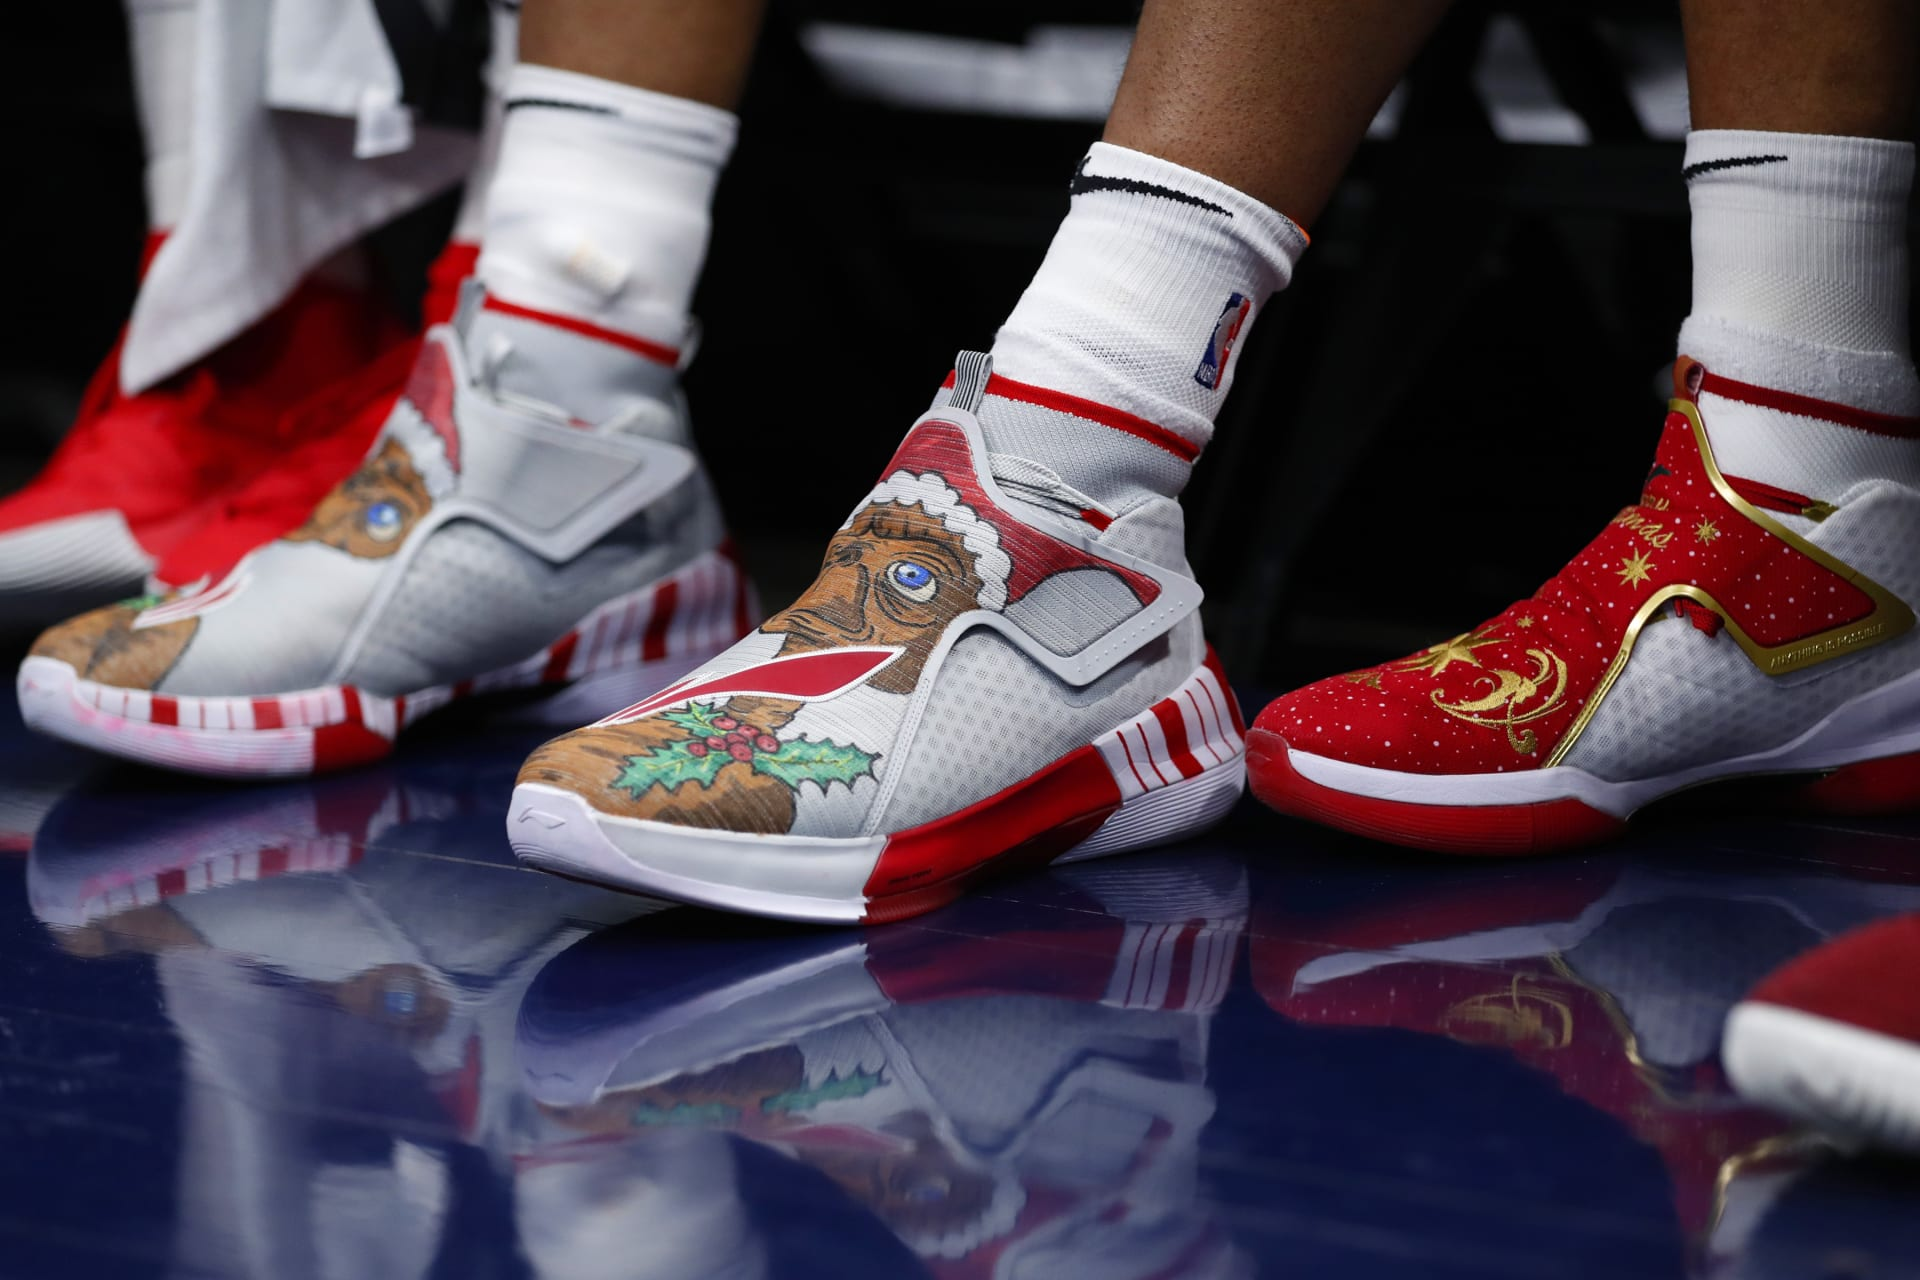 arrives 5728f c5758 NBA Christmas Shoes: Best Sneakers Worn on Christmas Day ...